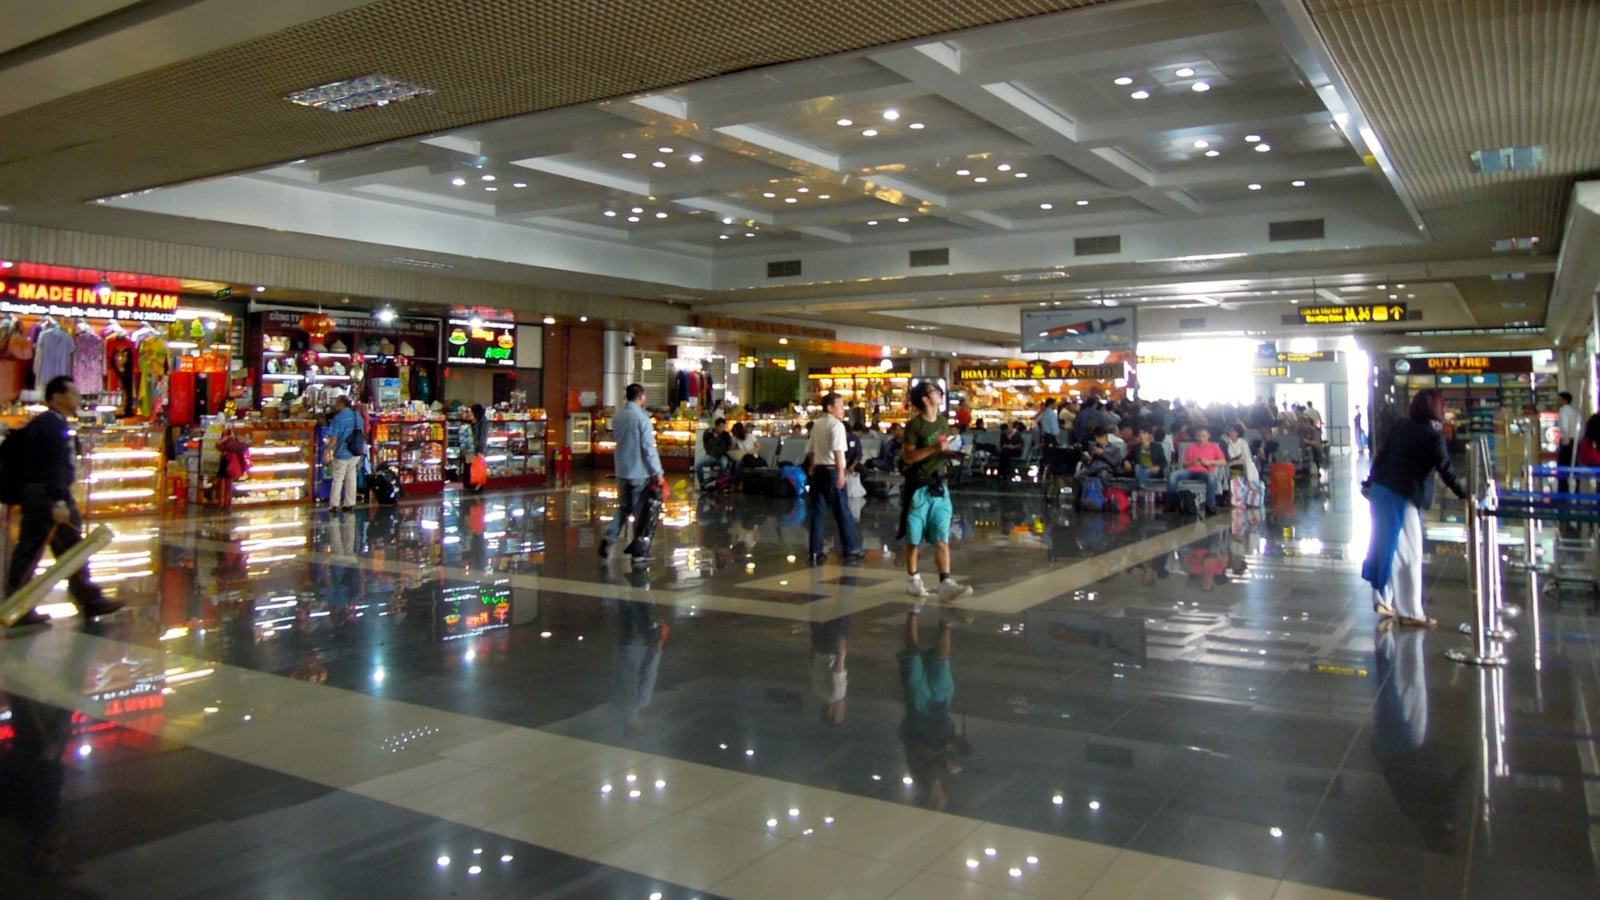 Image of the shops inside the Noi Bai International Airport in Vietnam